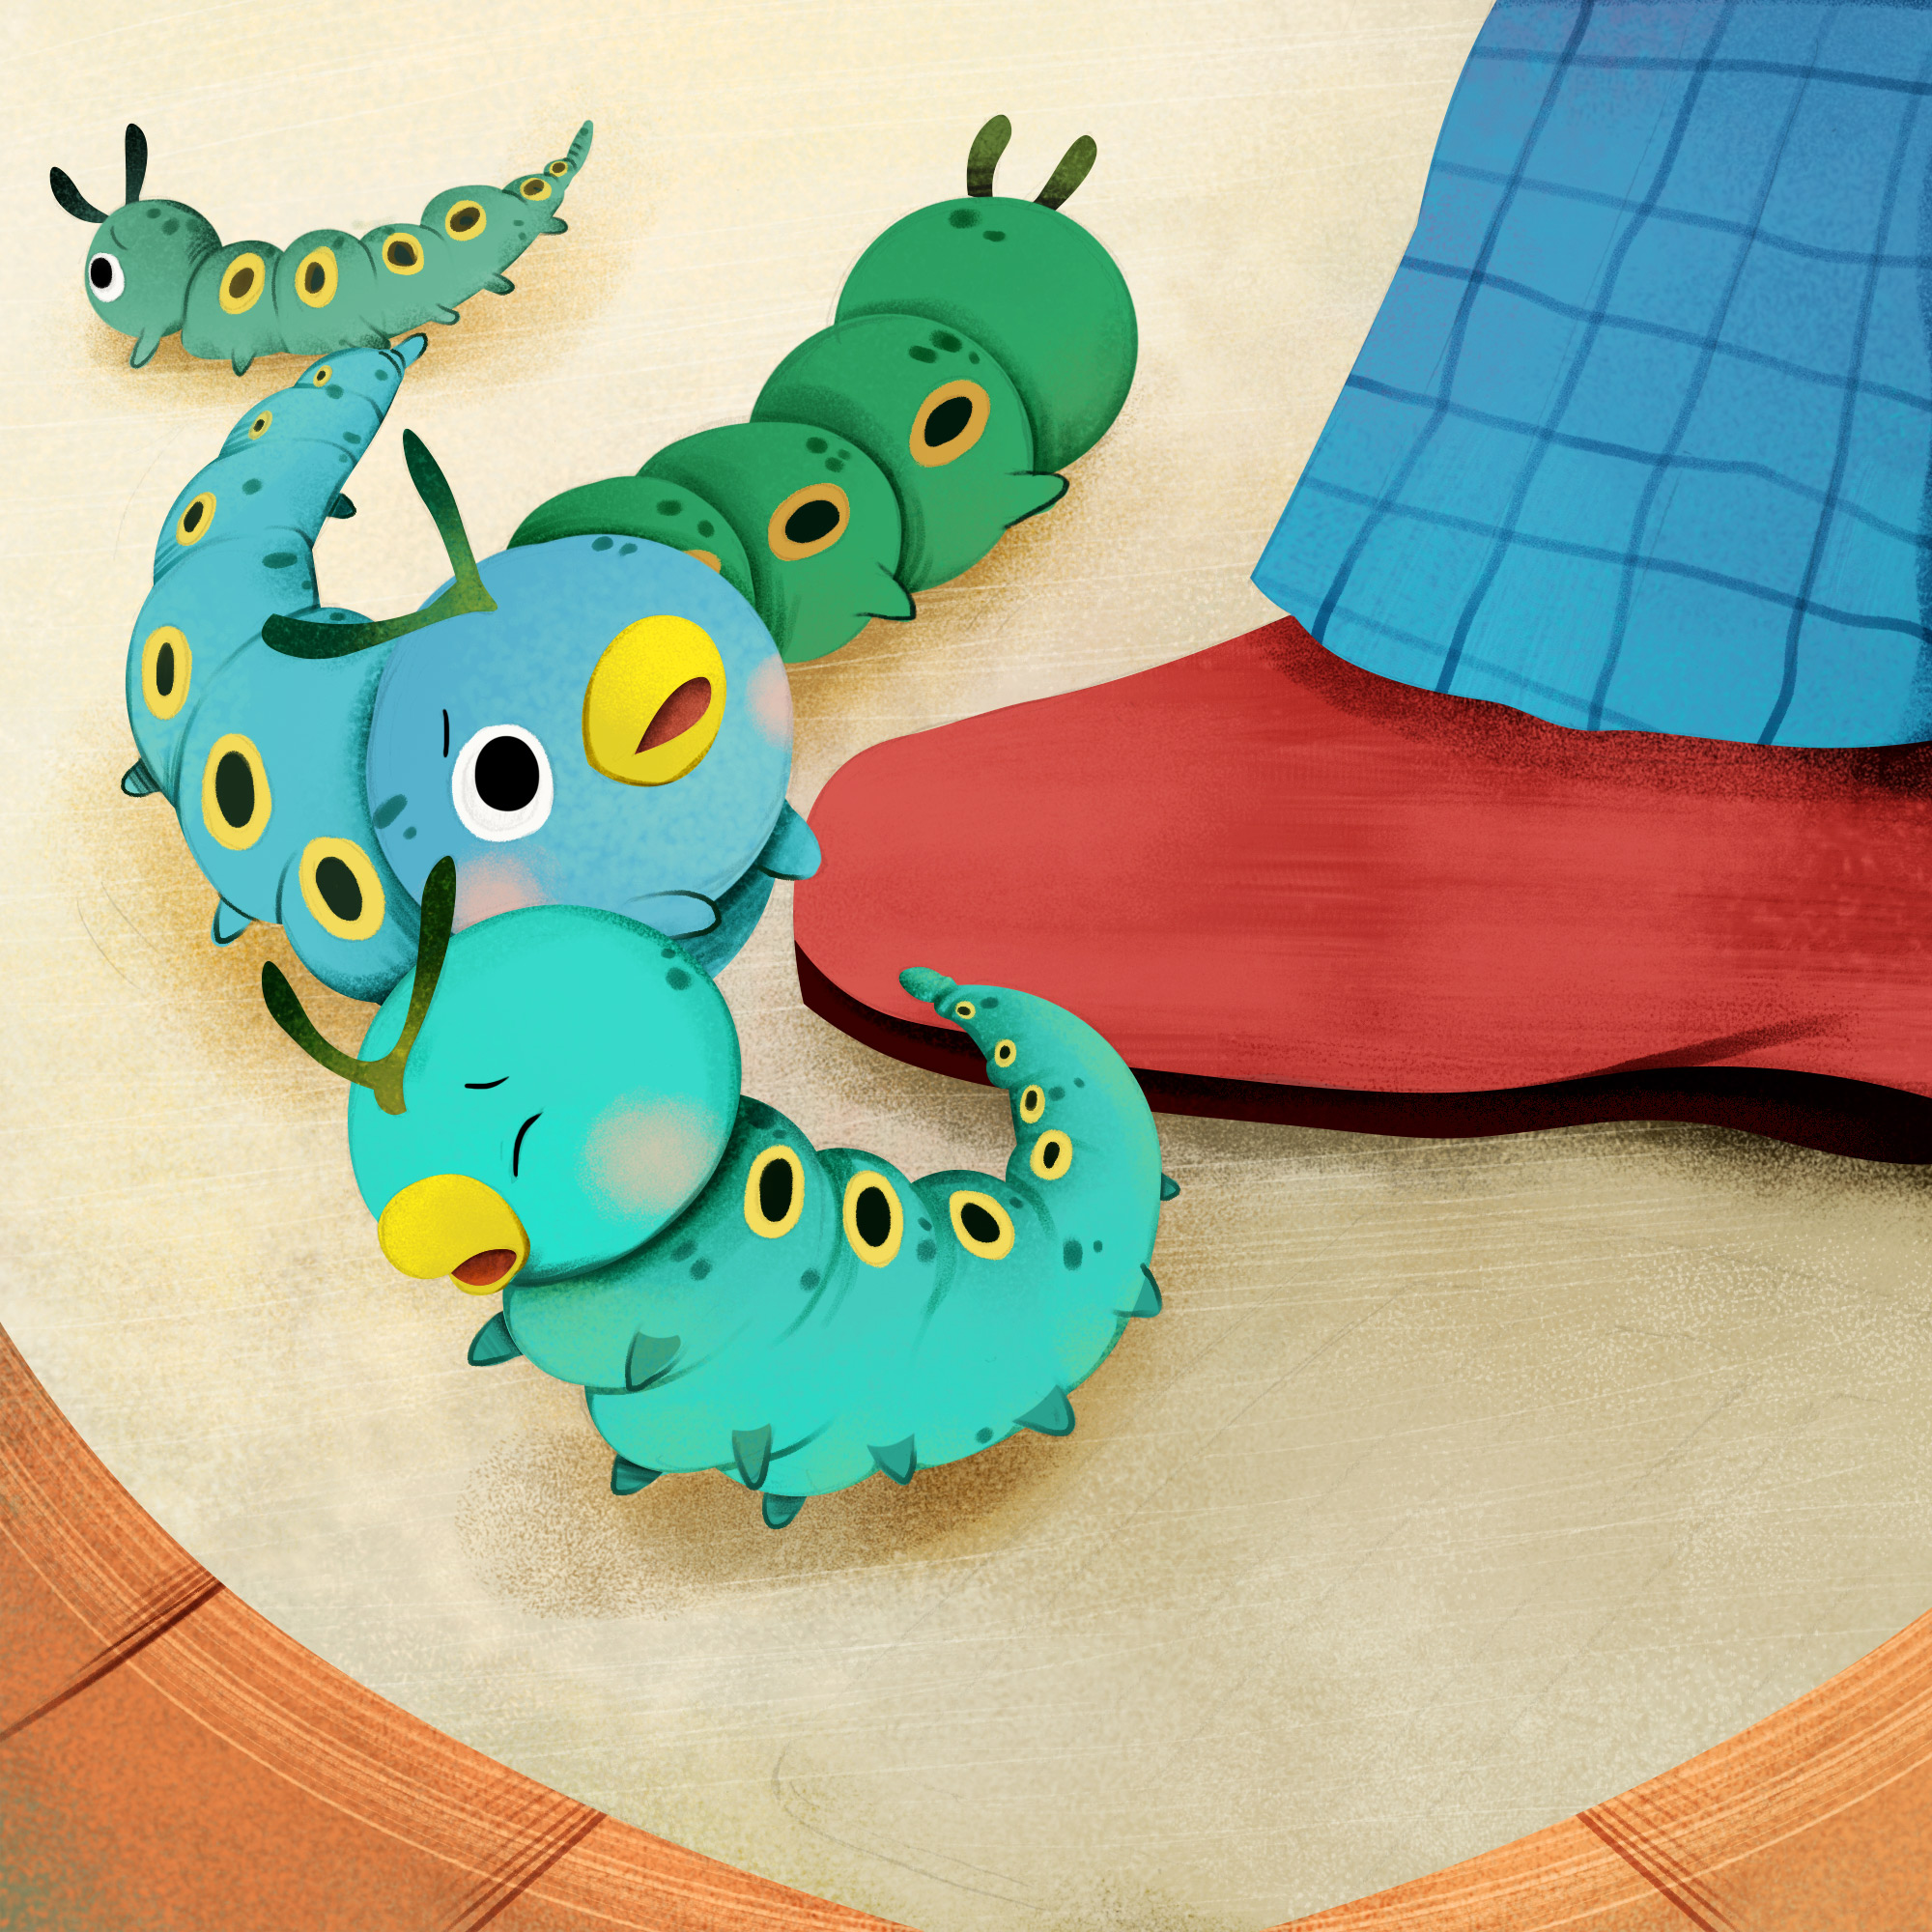 Caterpillars super adventure non physical book selected content of tmall spirit